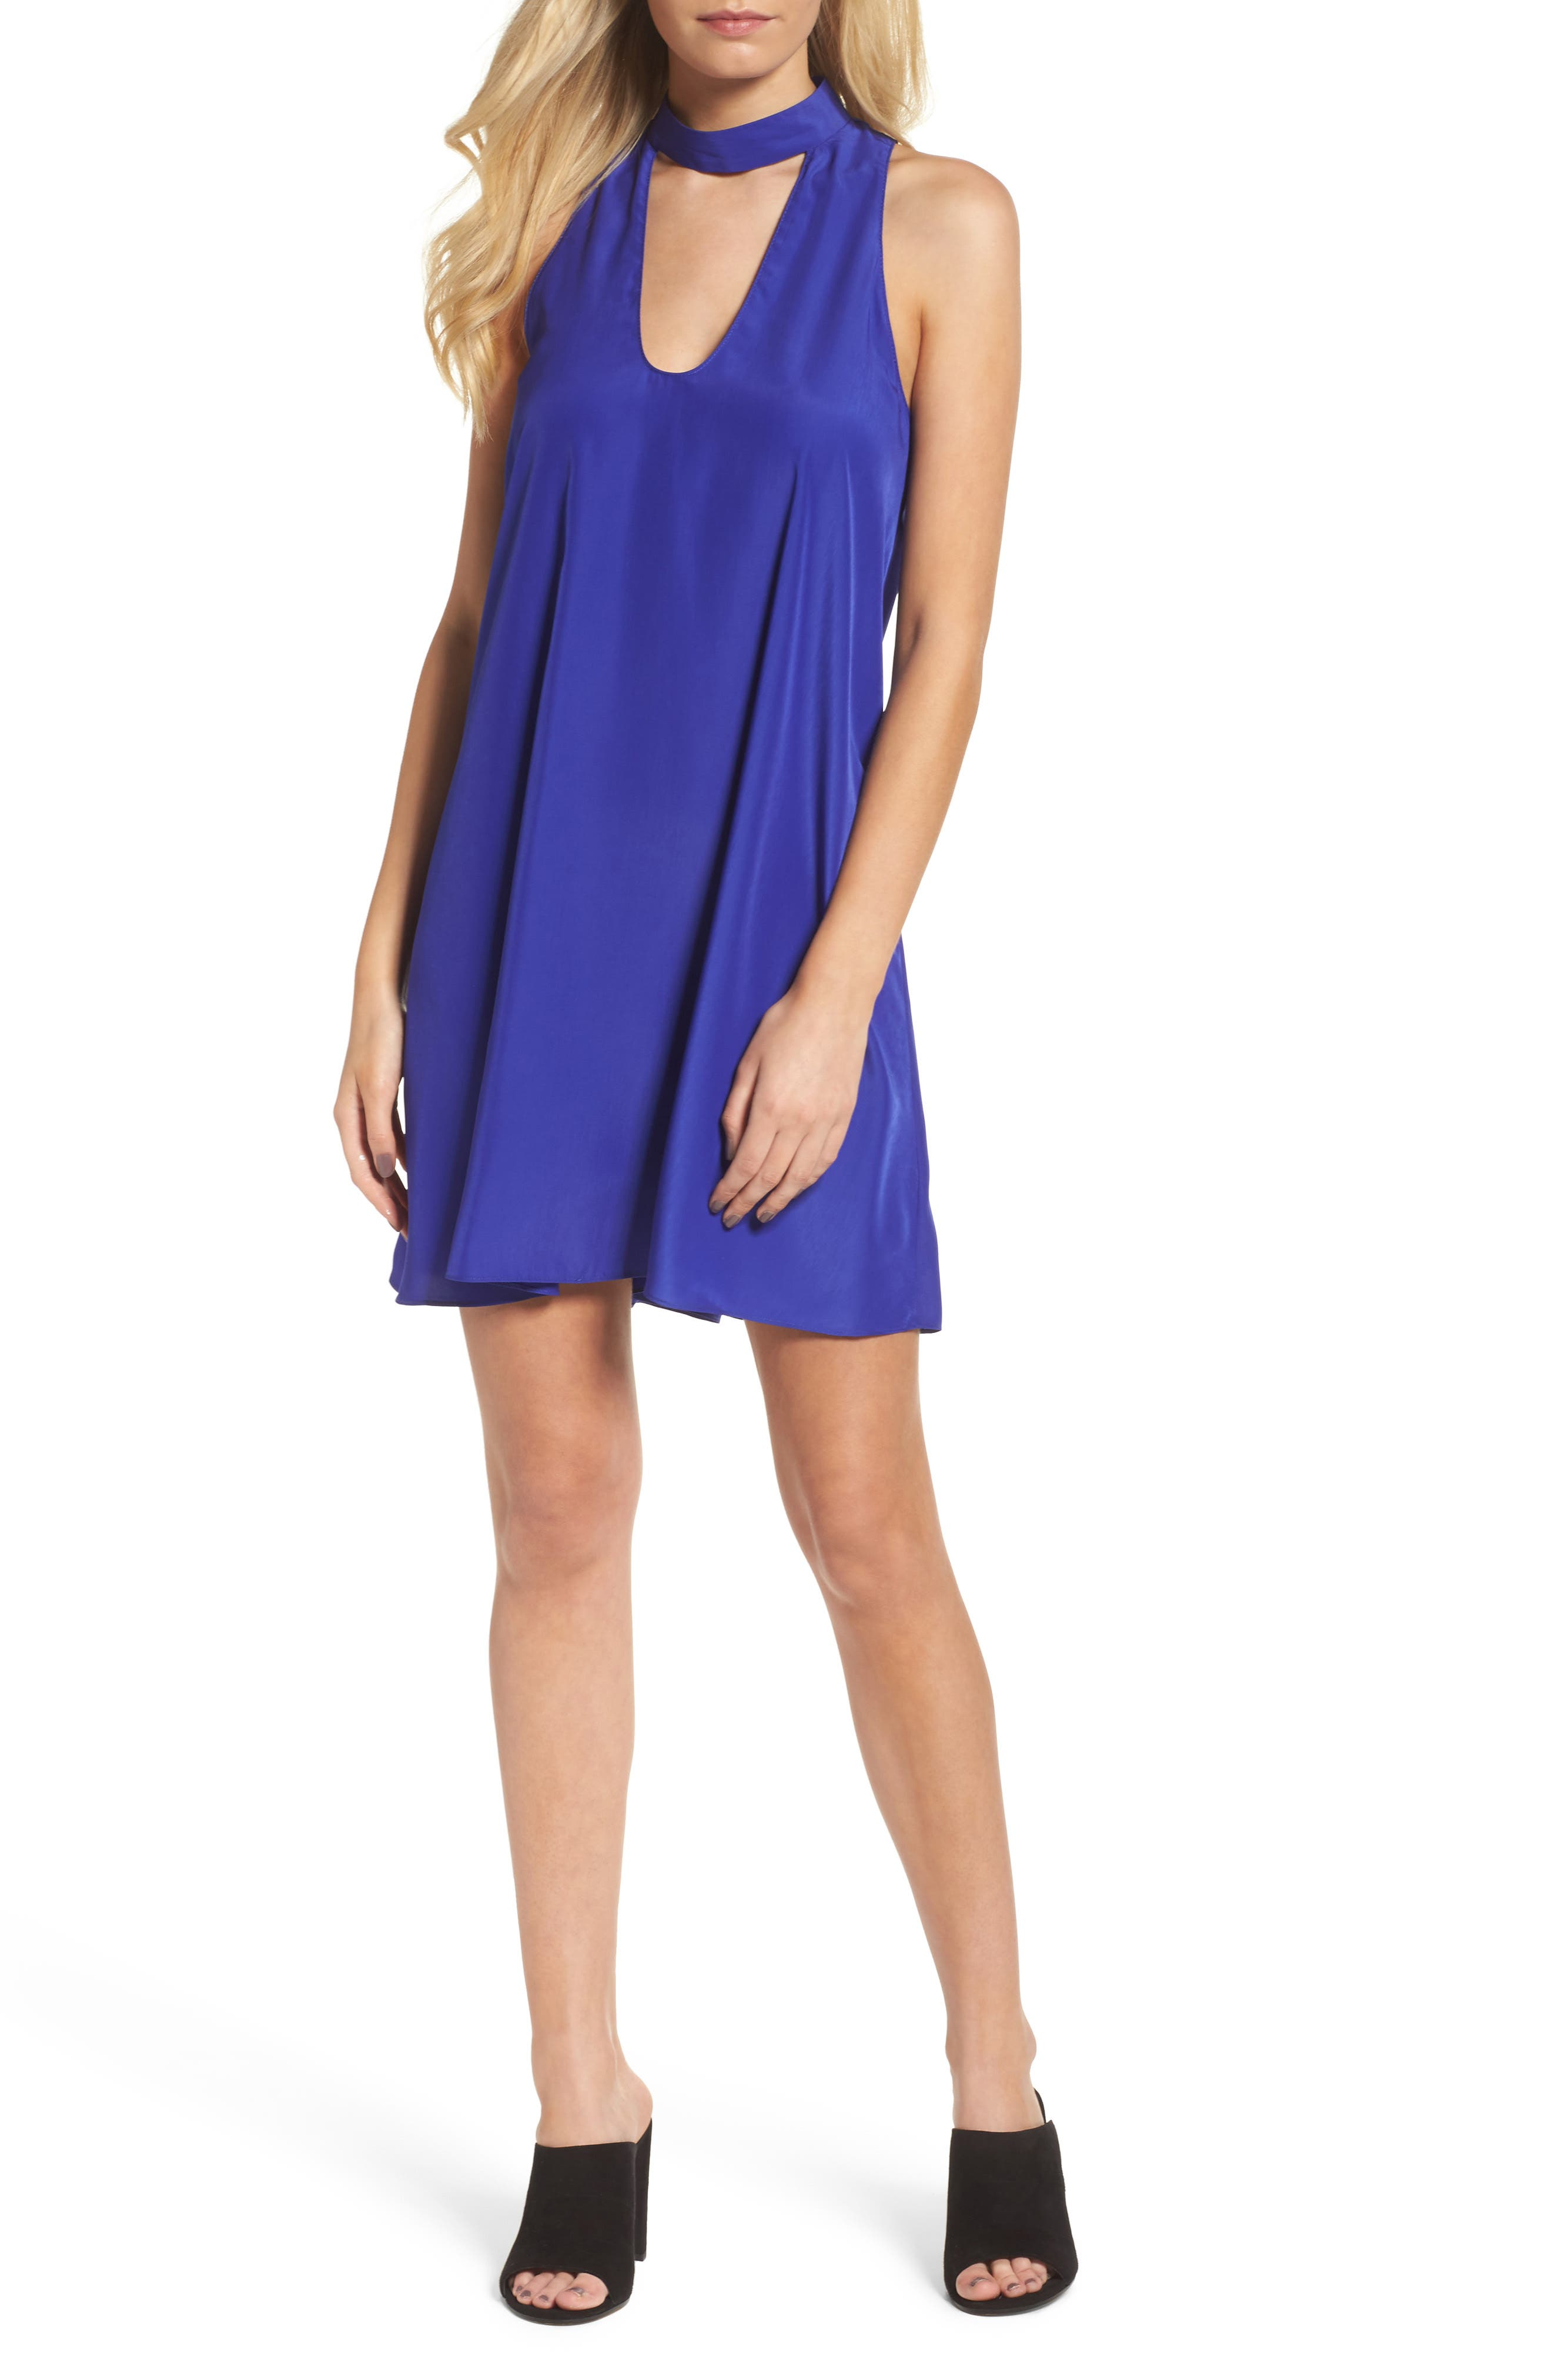 A by Amanda Choker Neck Shift Dress